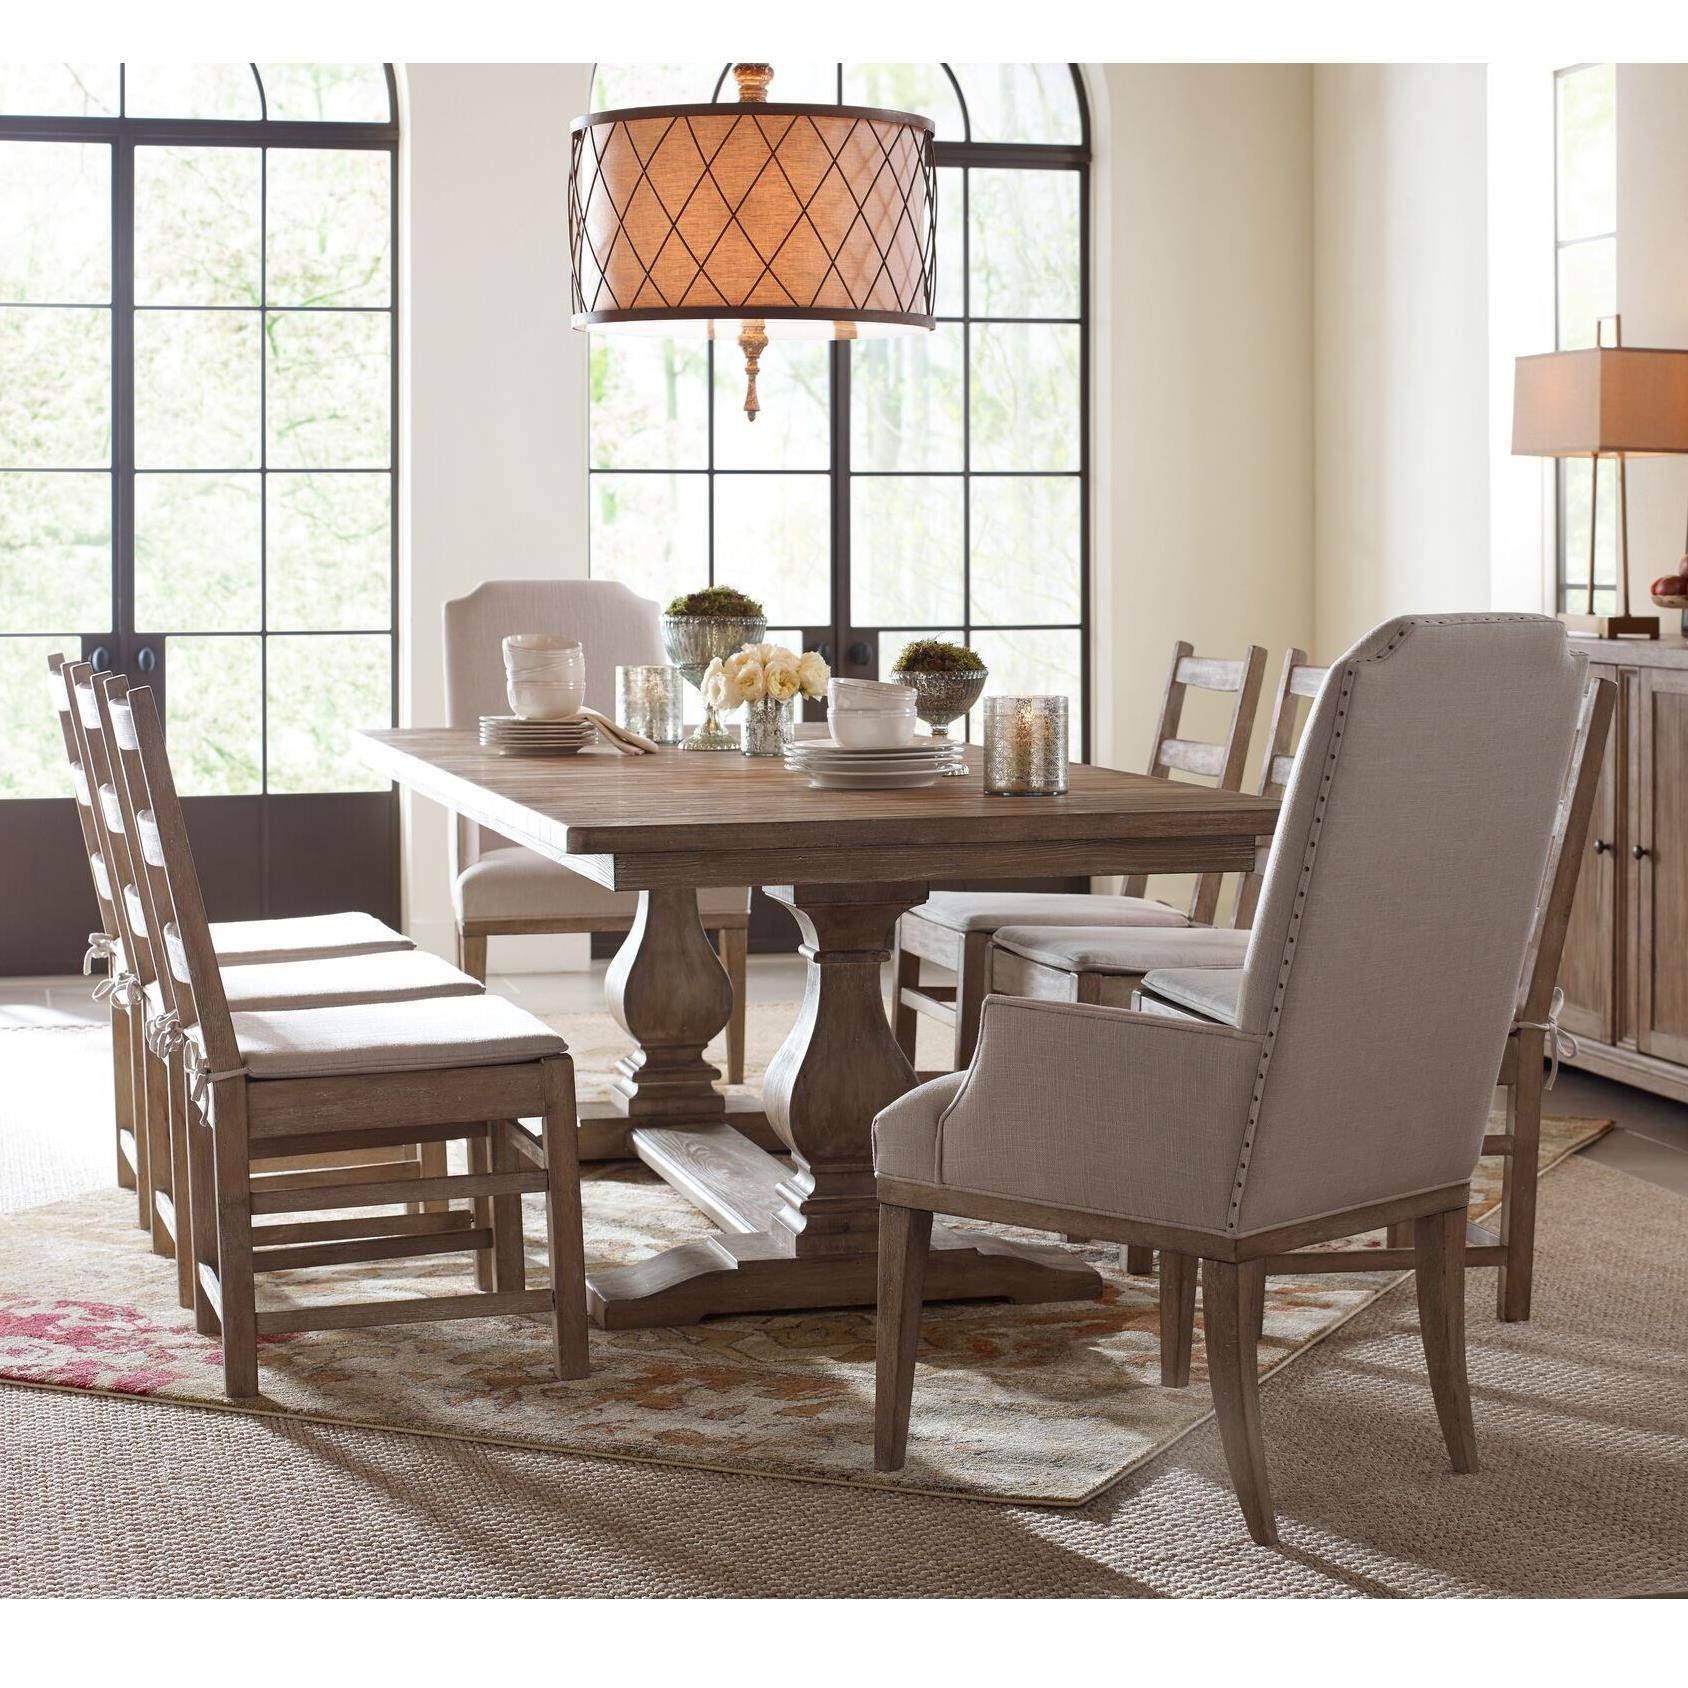 9 Piece Rustic Dining Room Sets